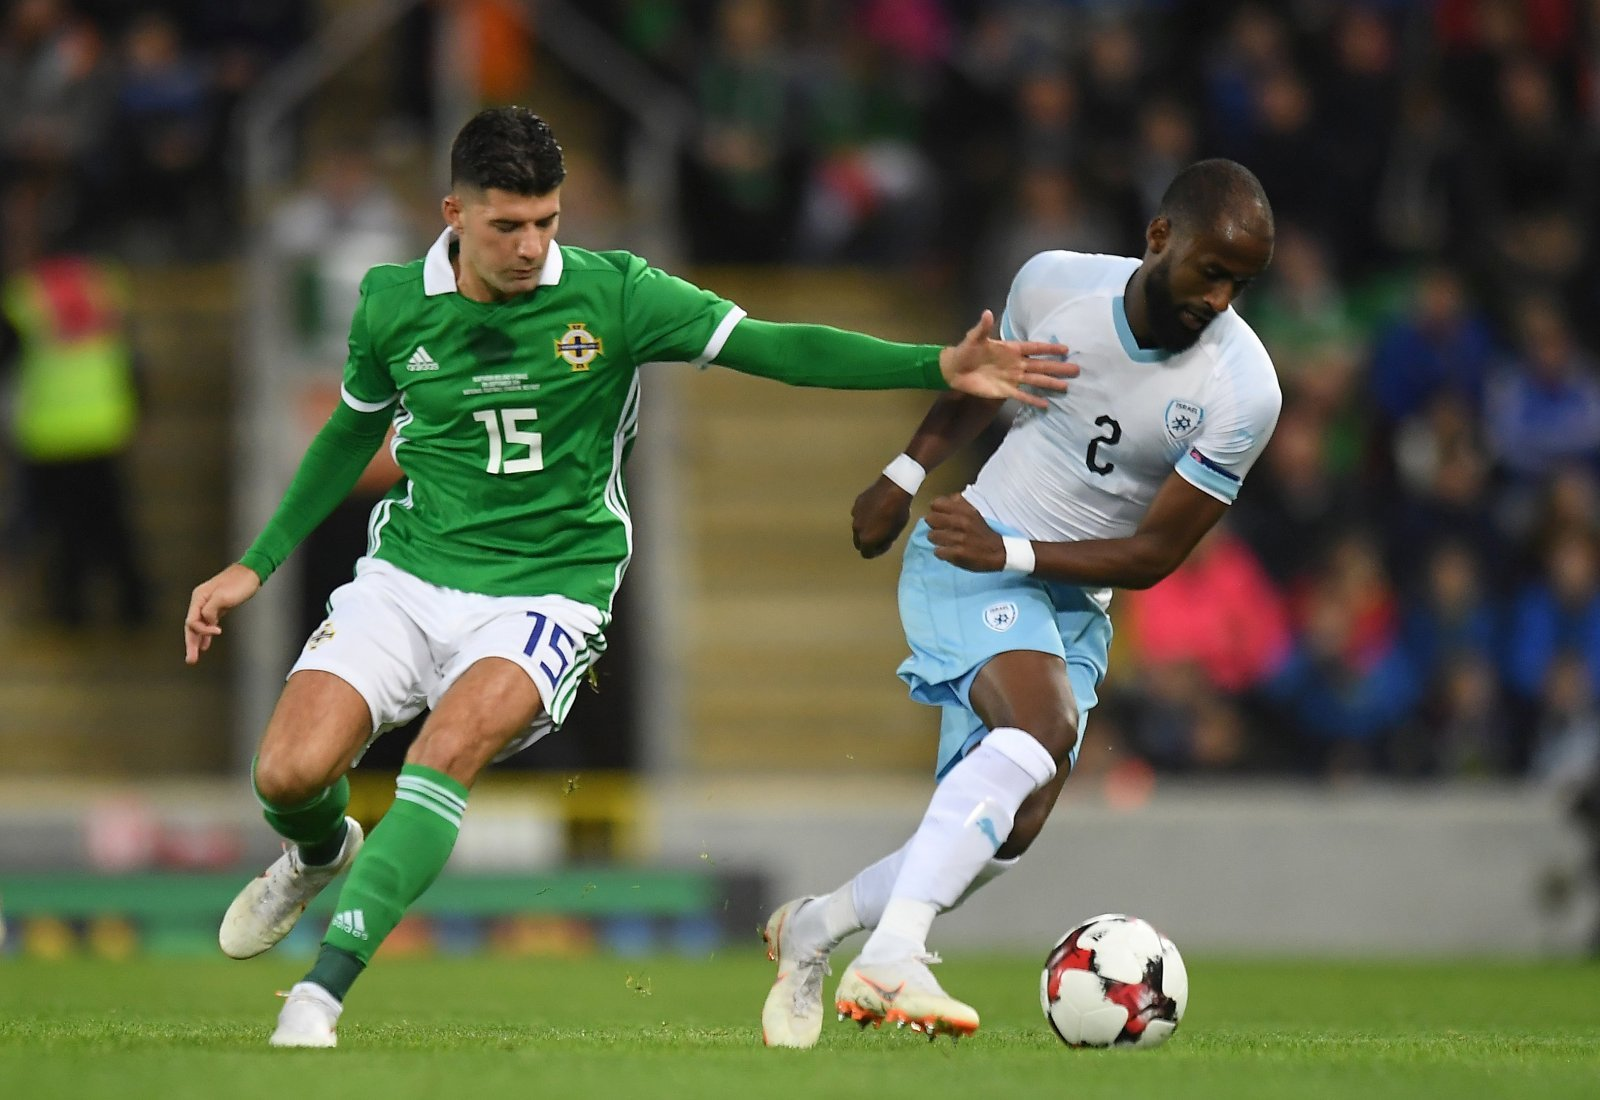 Jordan Jones in action for Northern Ireland